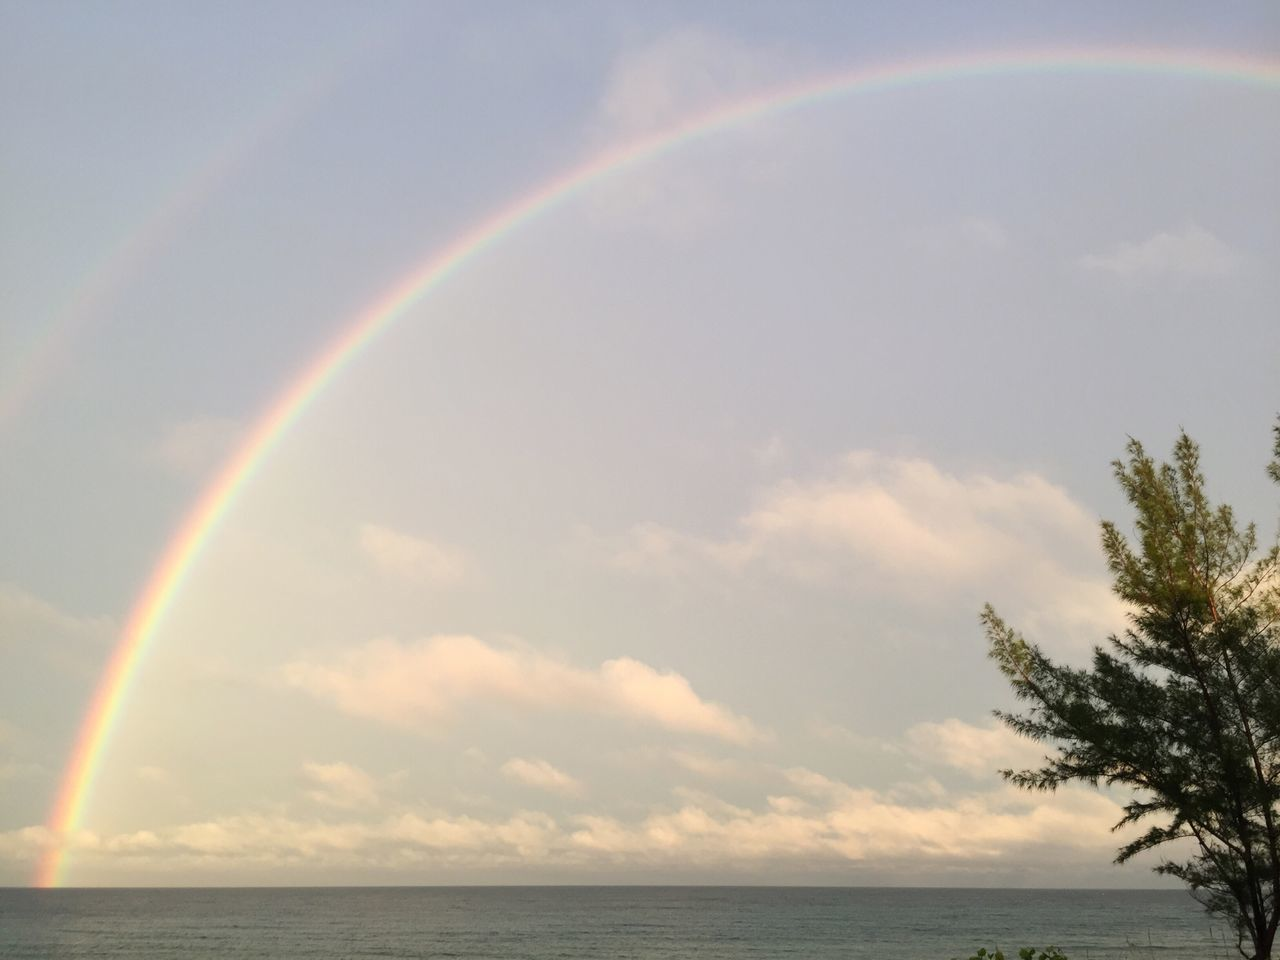 Rainbow Double Rainbow Scenics Sky Nature Beauty In Nature Tranquility No People Sea Day Cloud - Sky Beachphotography Beach Rainbow Sky Water Outdoors Multi Colored Horizon Over Water Tree rainbow over the ocean